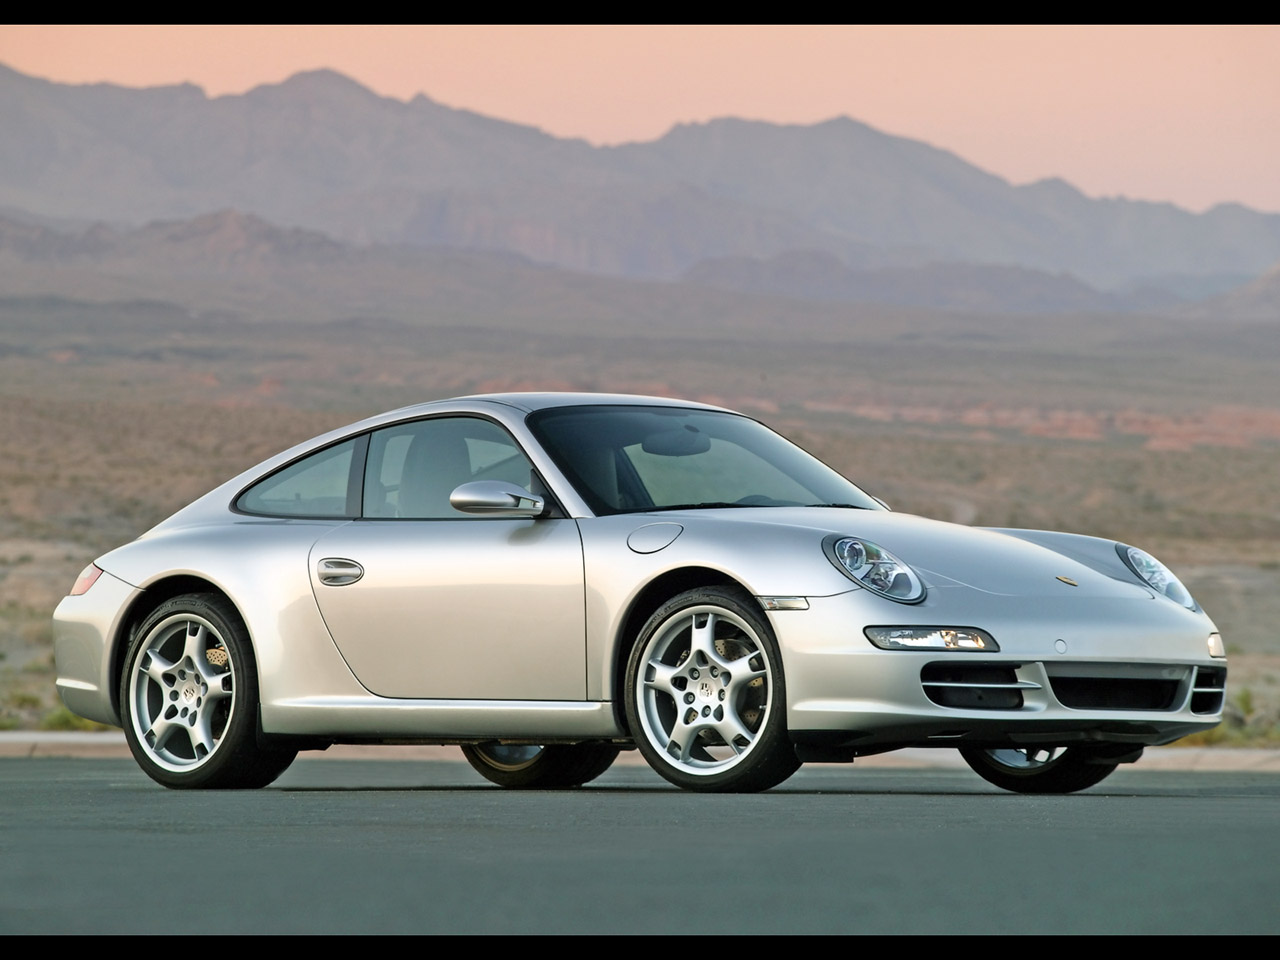 RACING CIGALO: PORSCHE 911 CARRERA 997 325CV